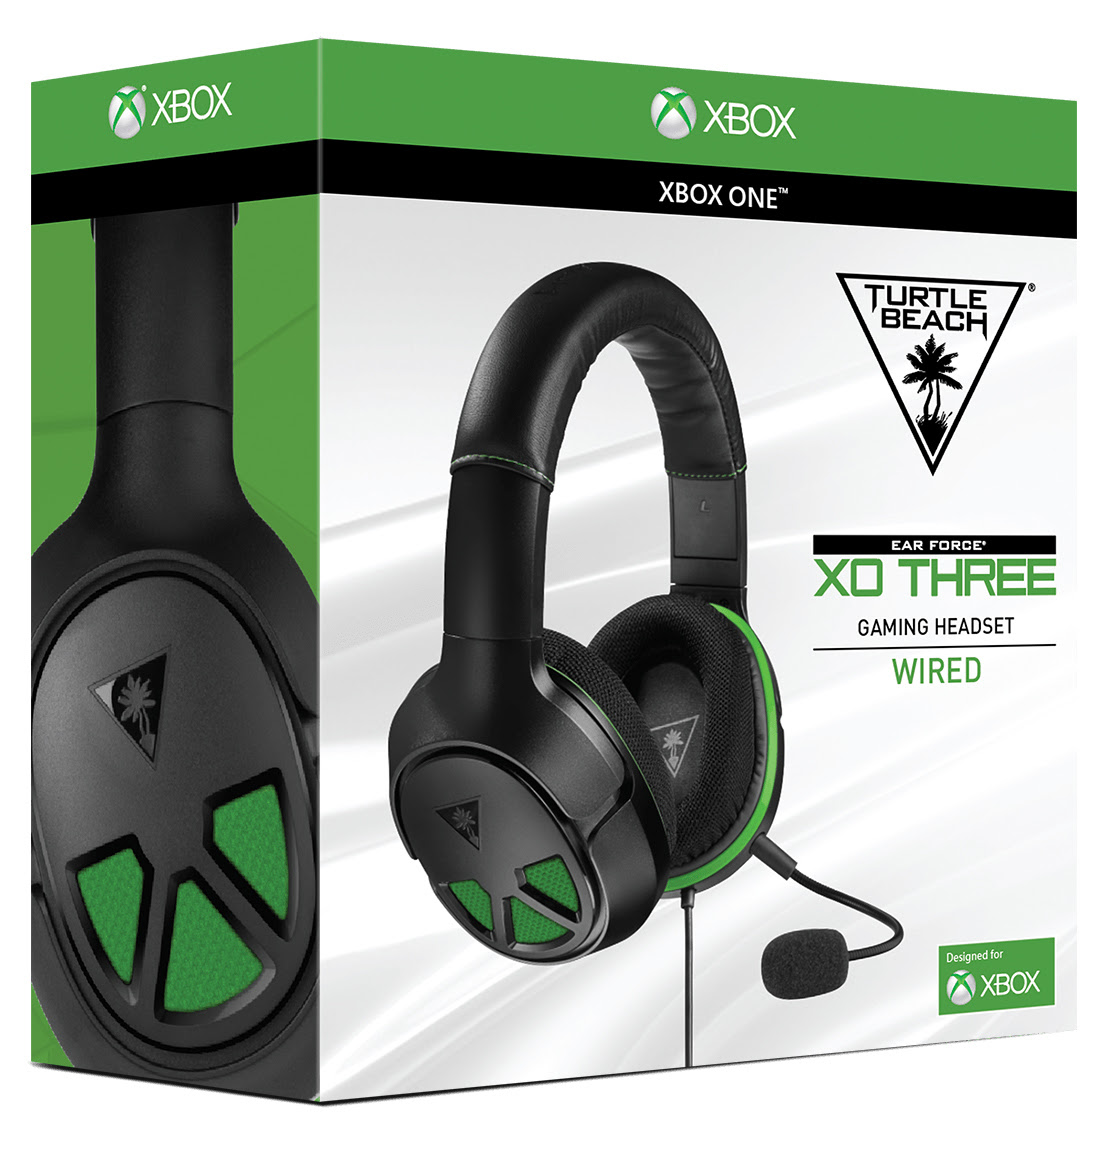 how to use a 3.5 mm headset on xbox 360